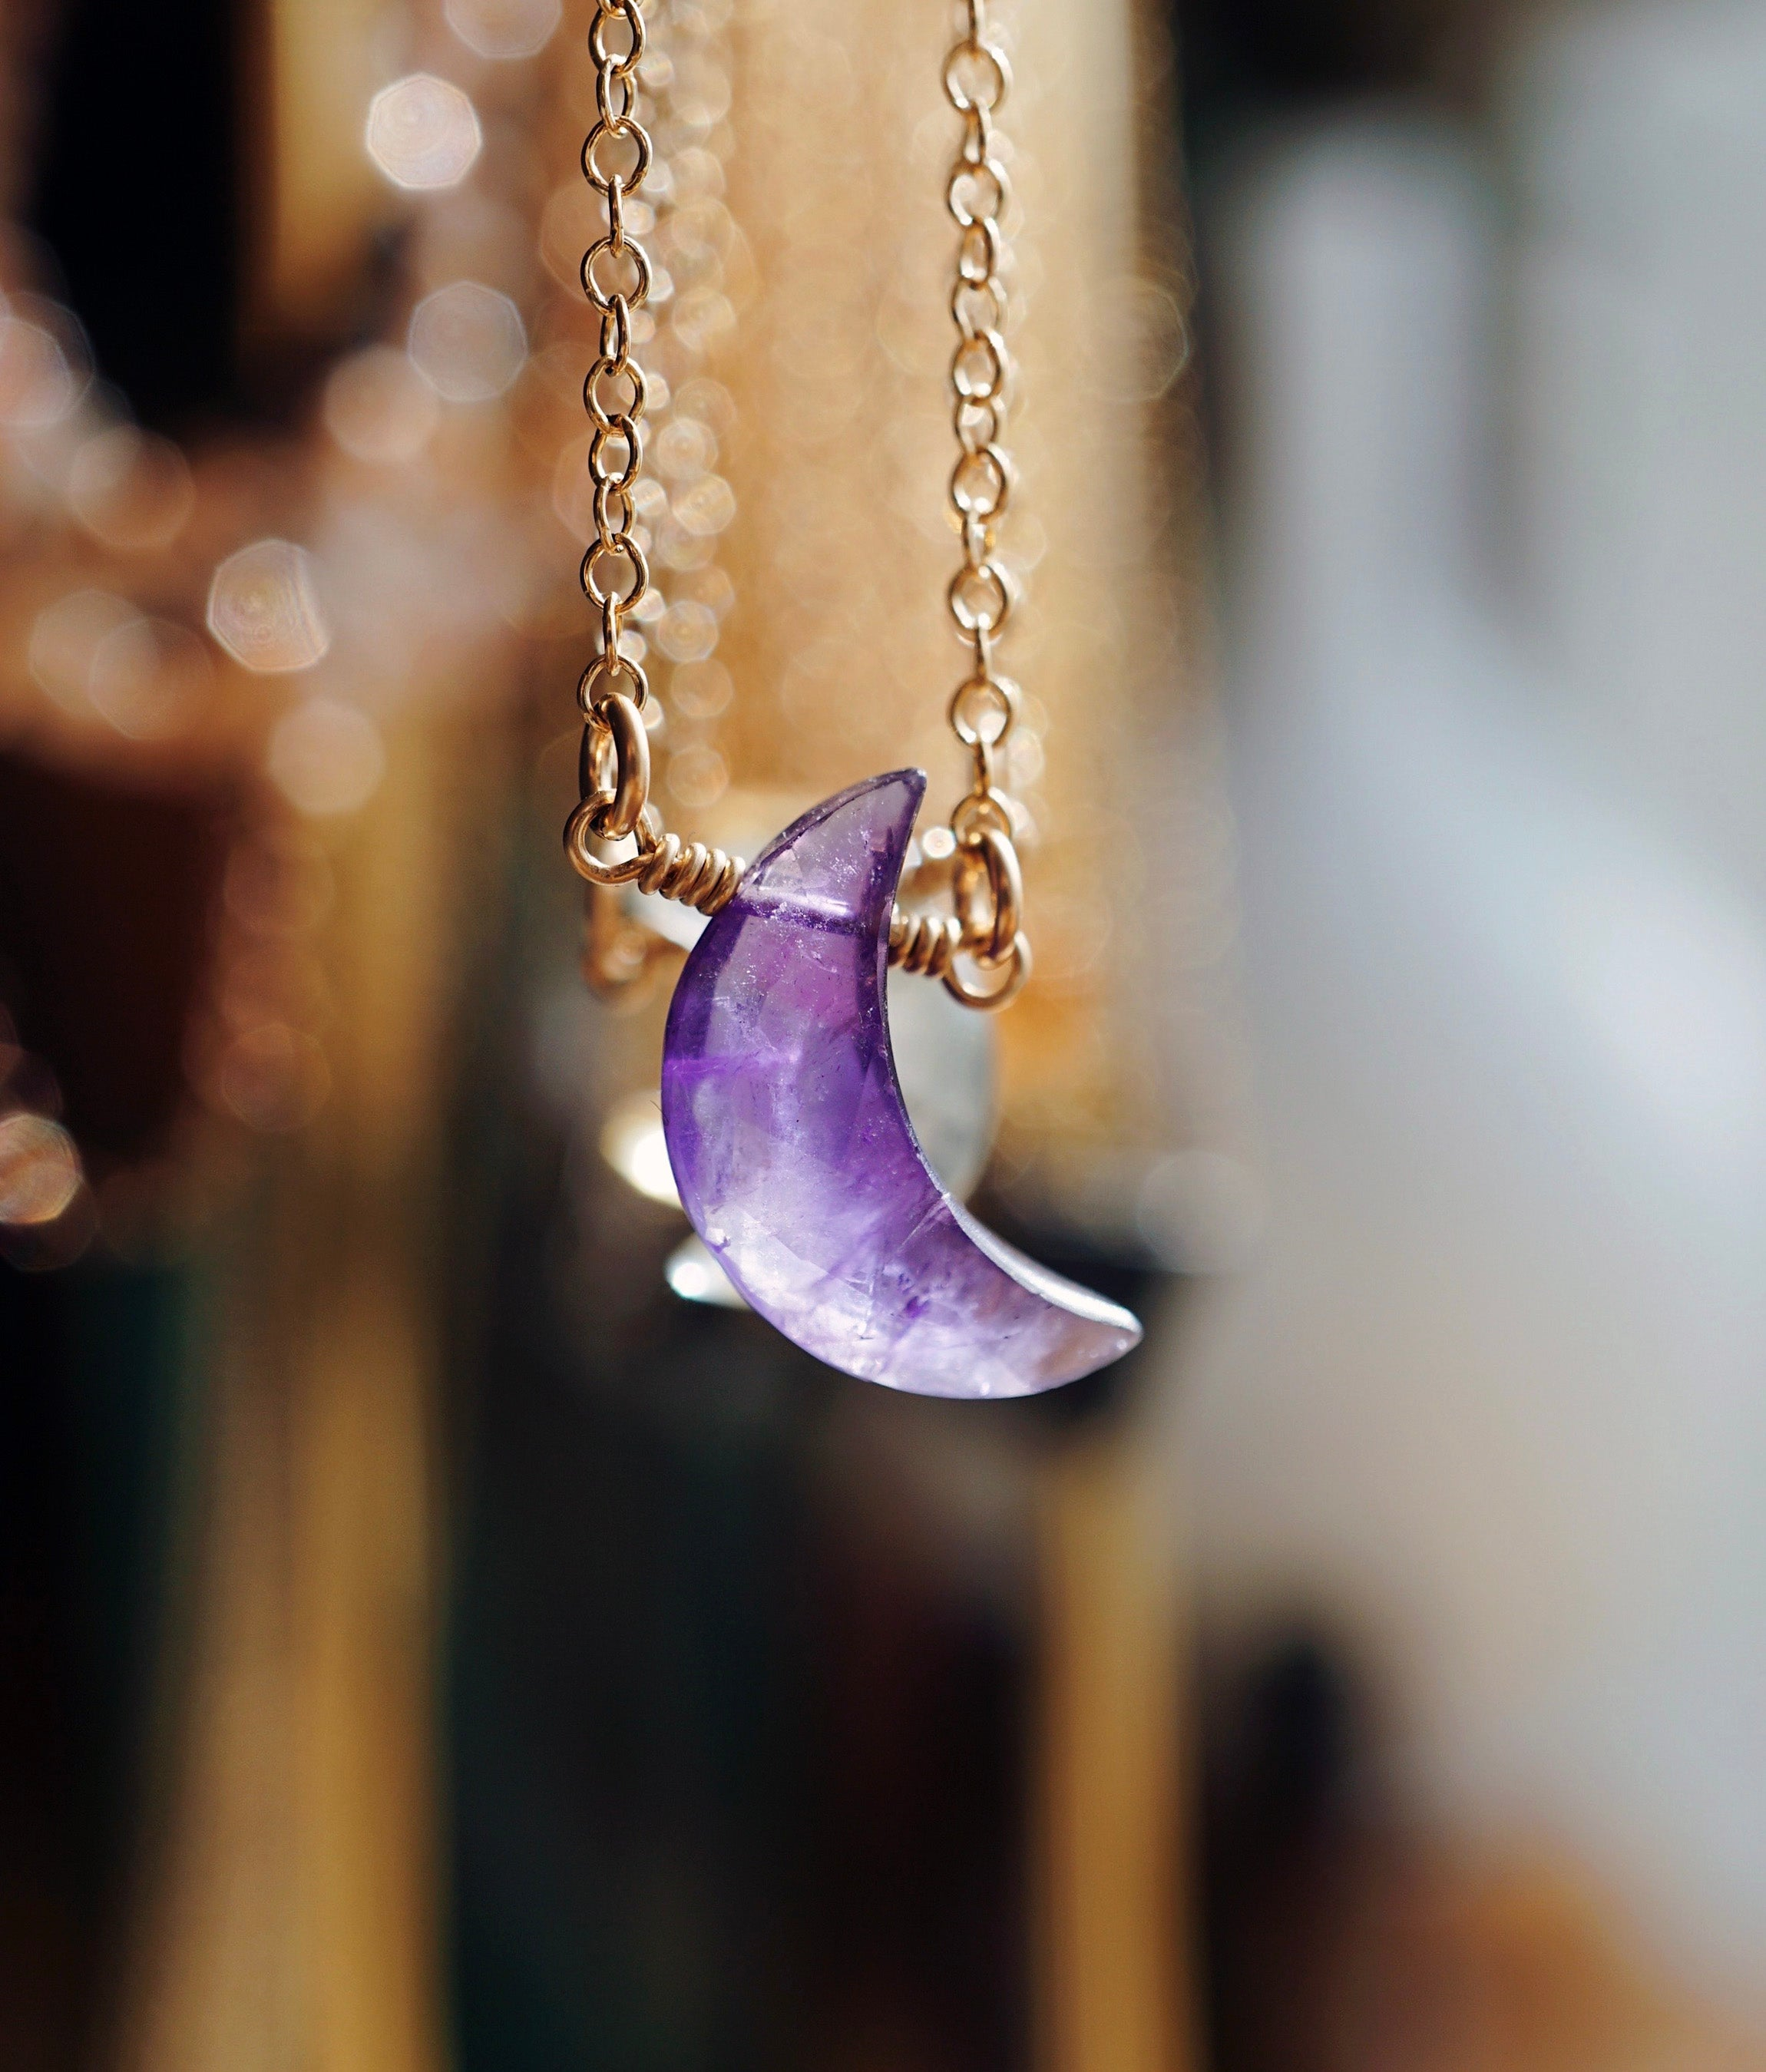 Dainty amethyst crystal necklace, purple crescent moon stone, essential oil diffuser necklace